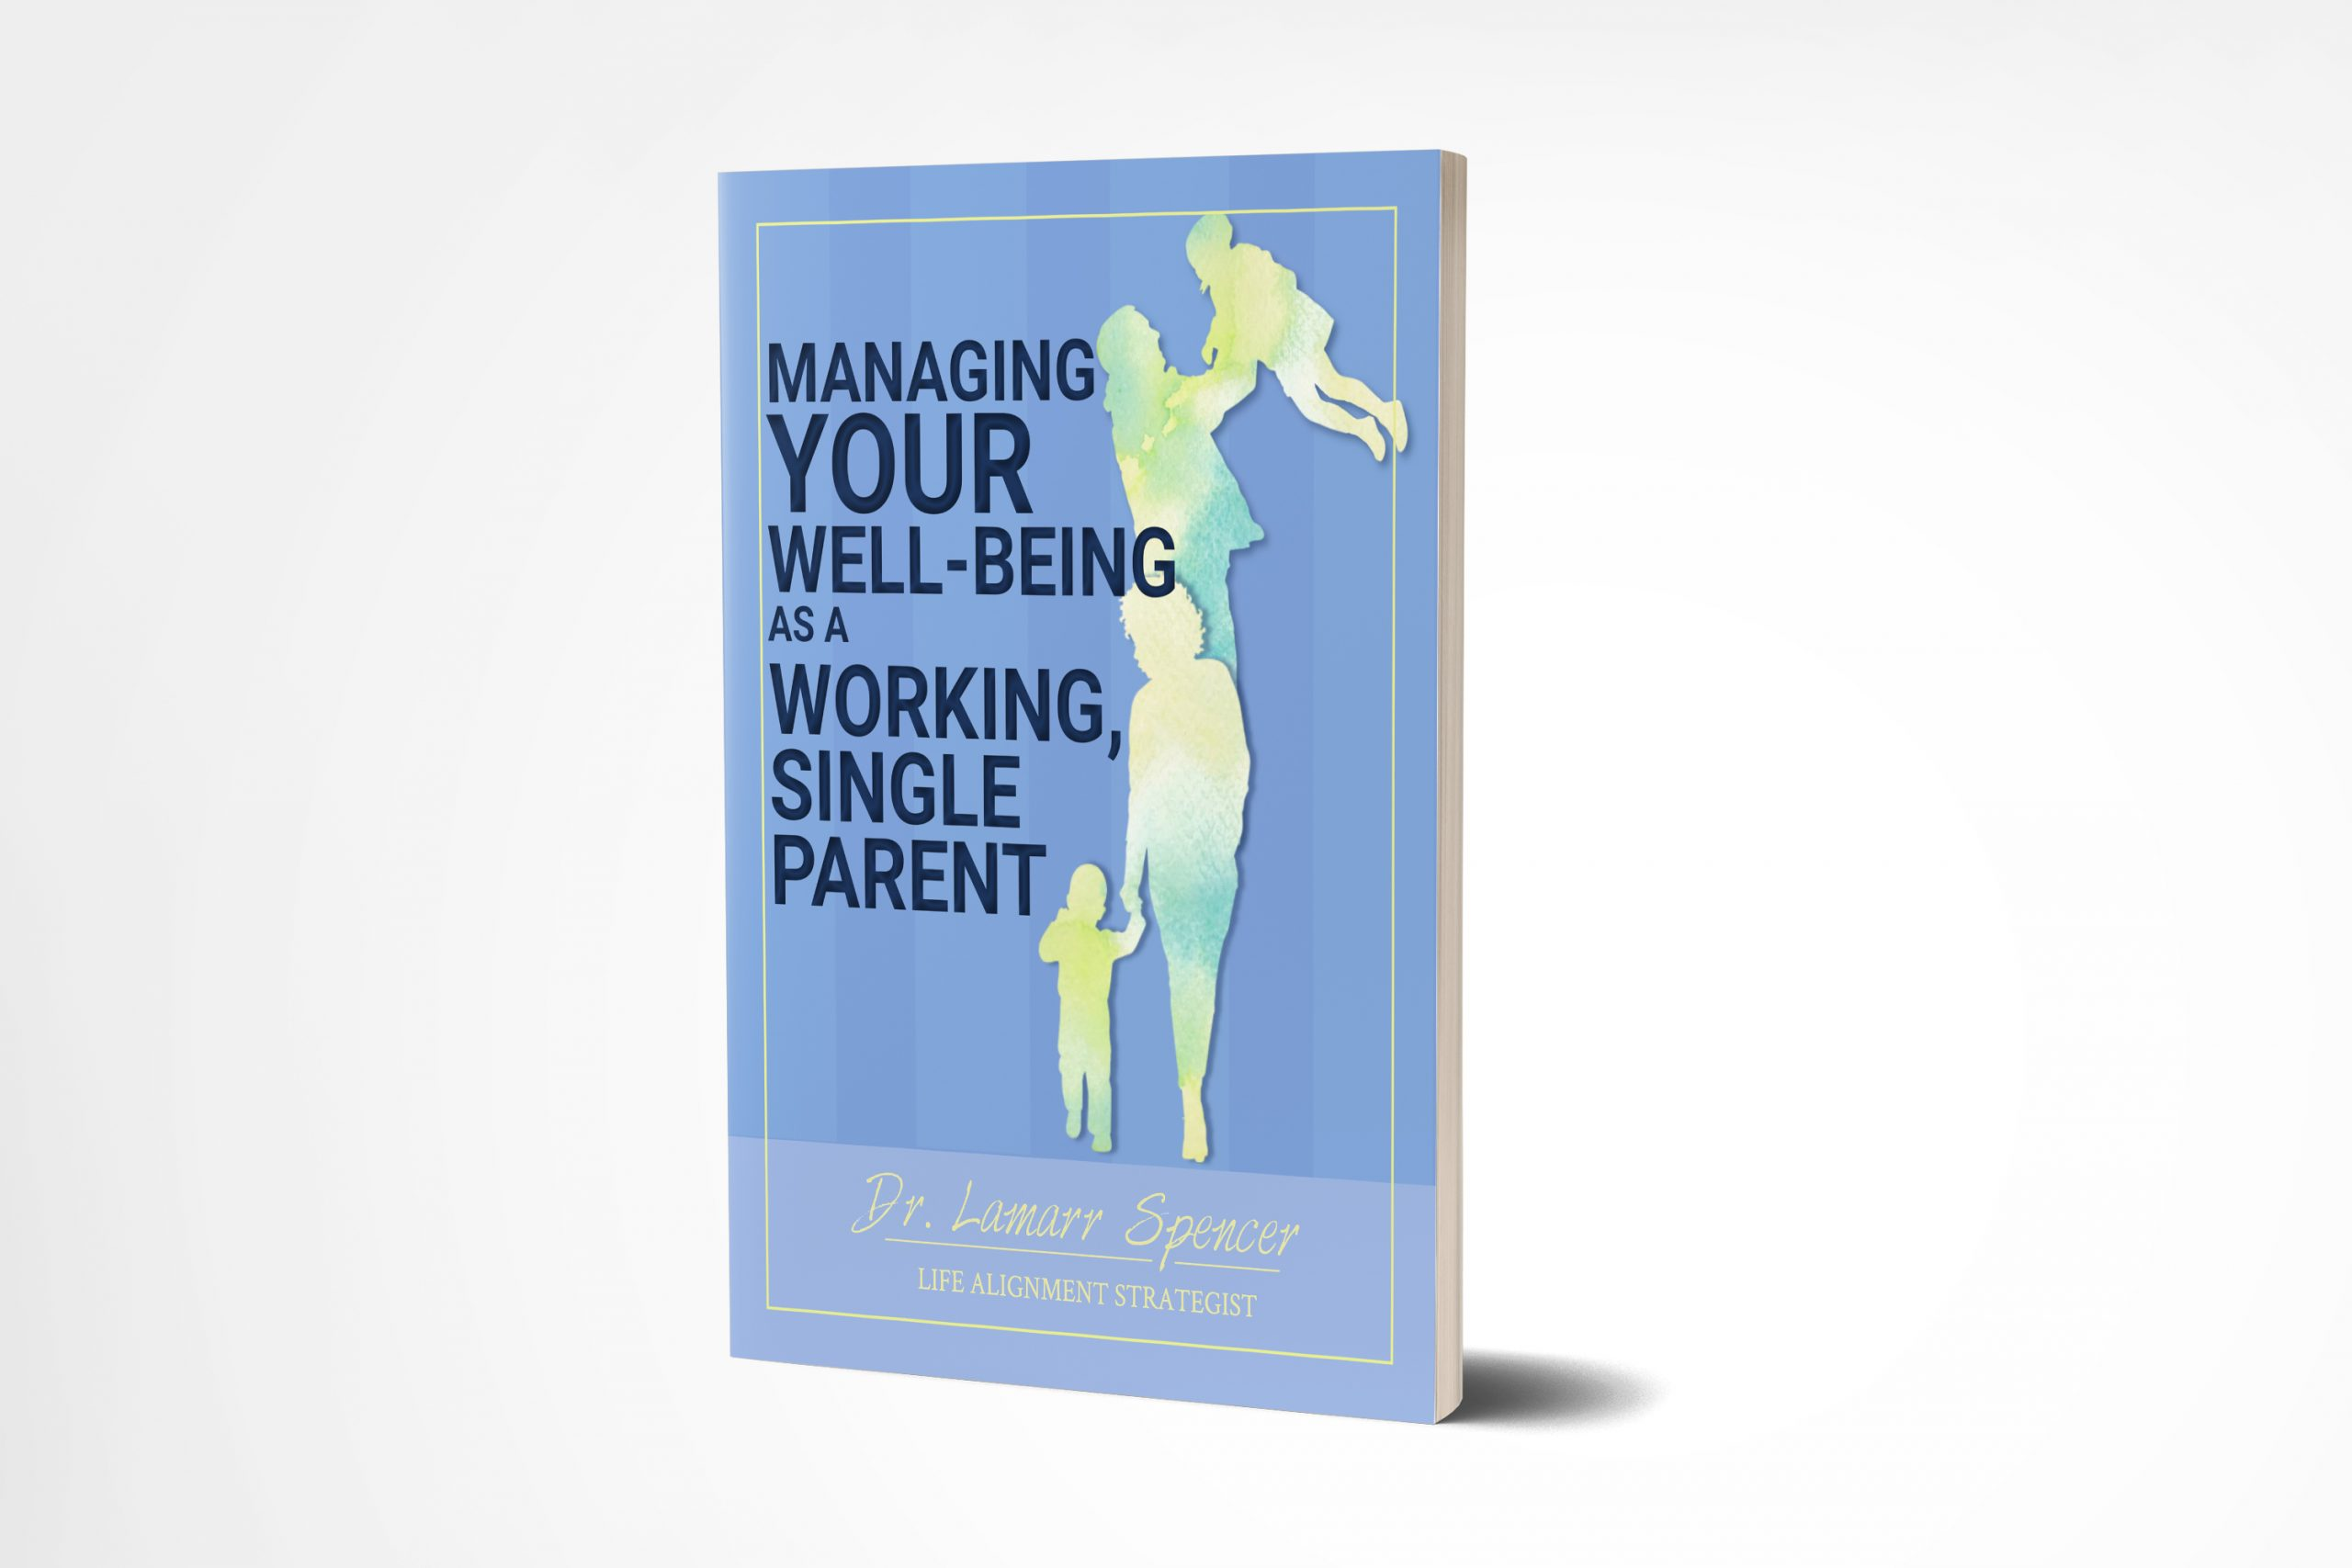 Managing Your Well-Being as a Working, Single Parent-Paperback